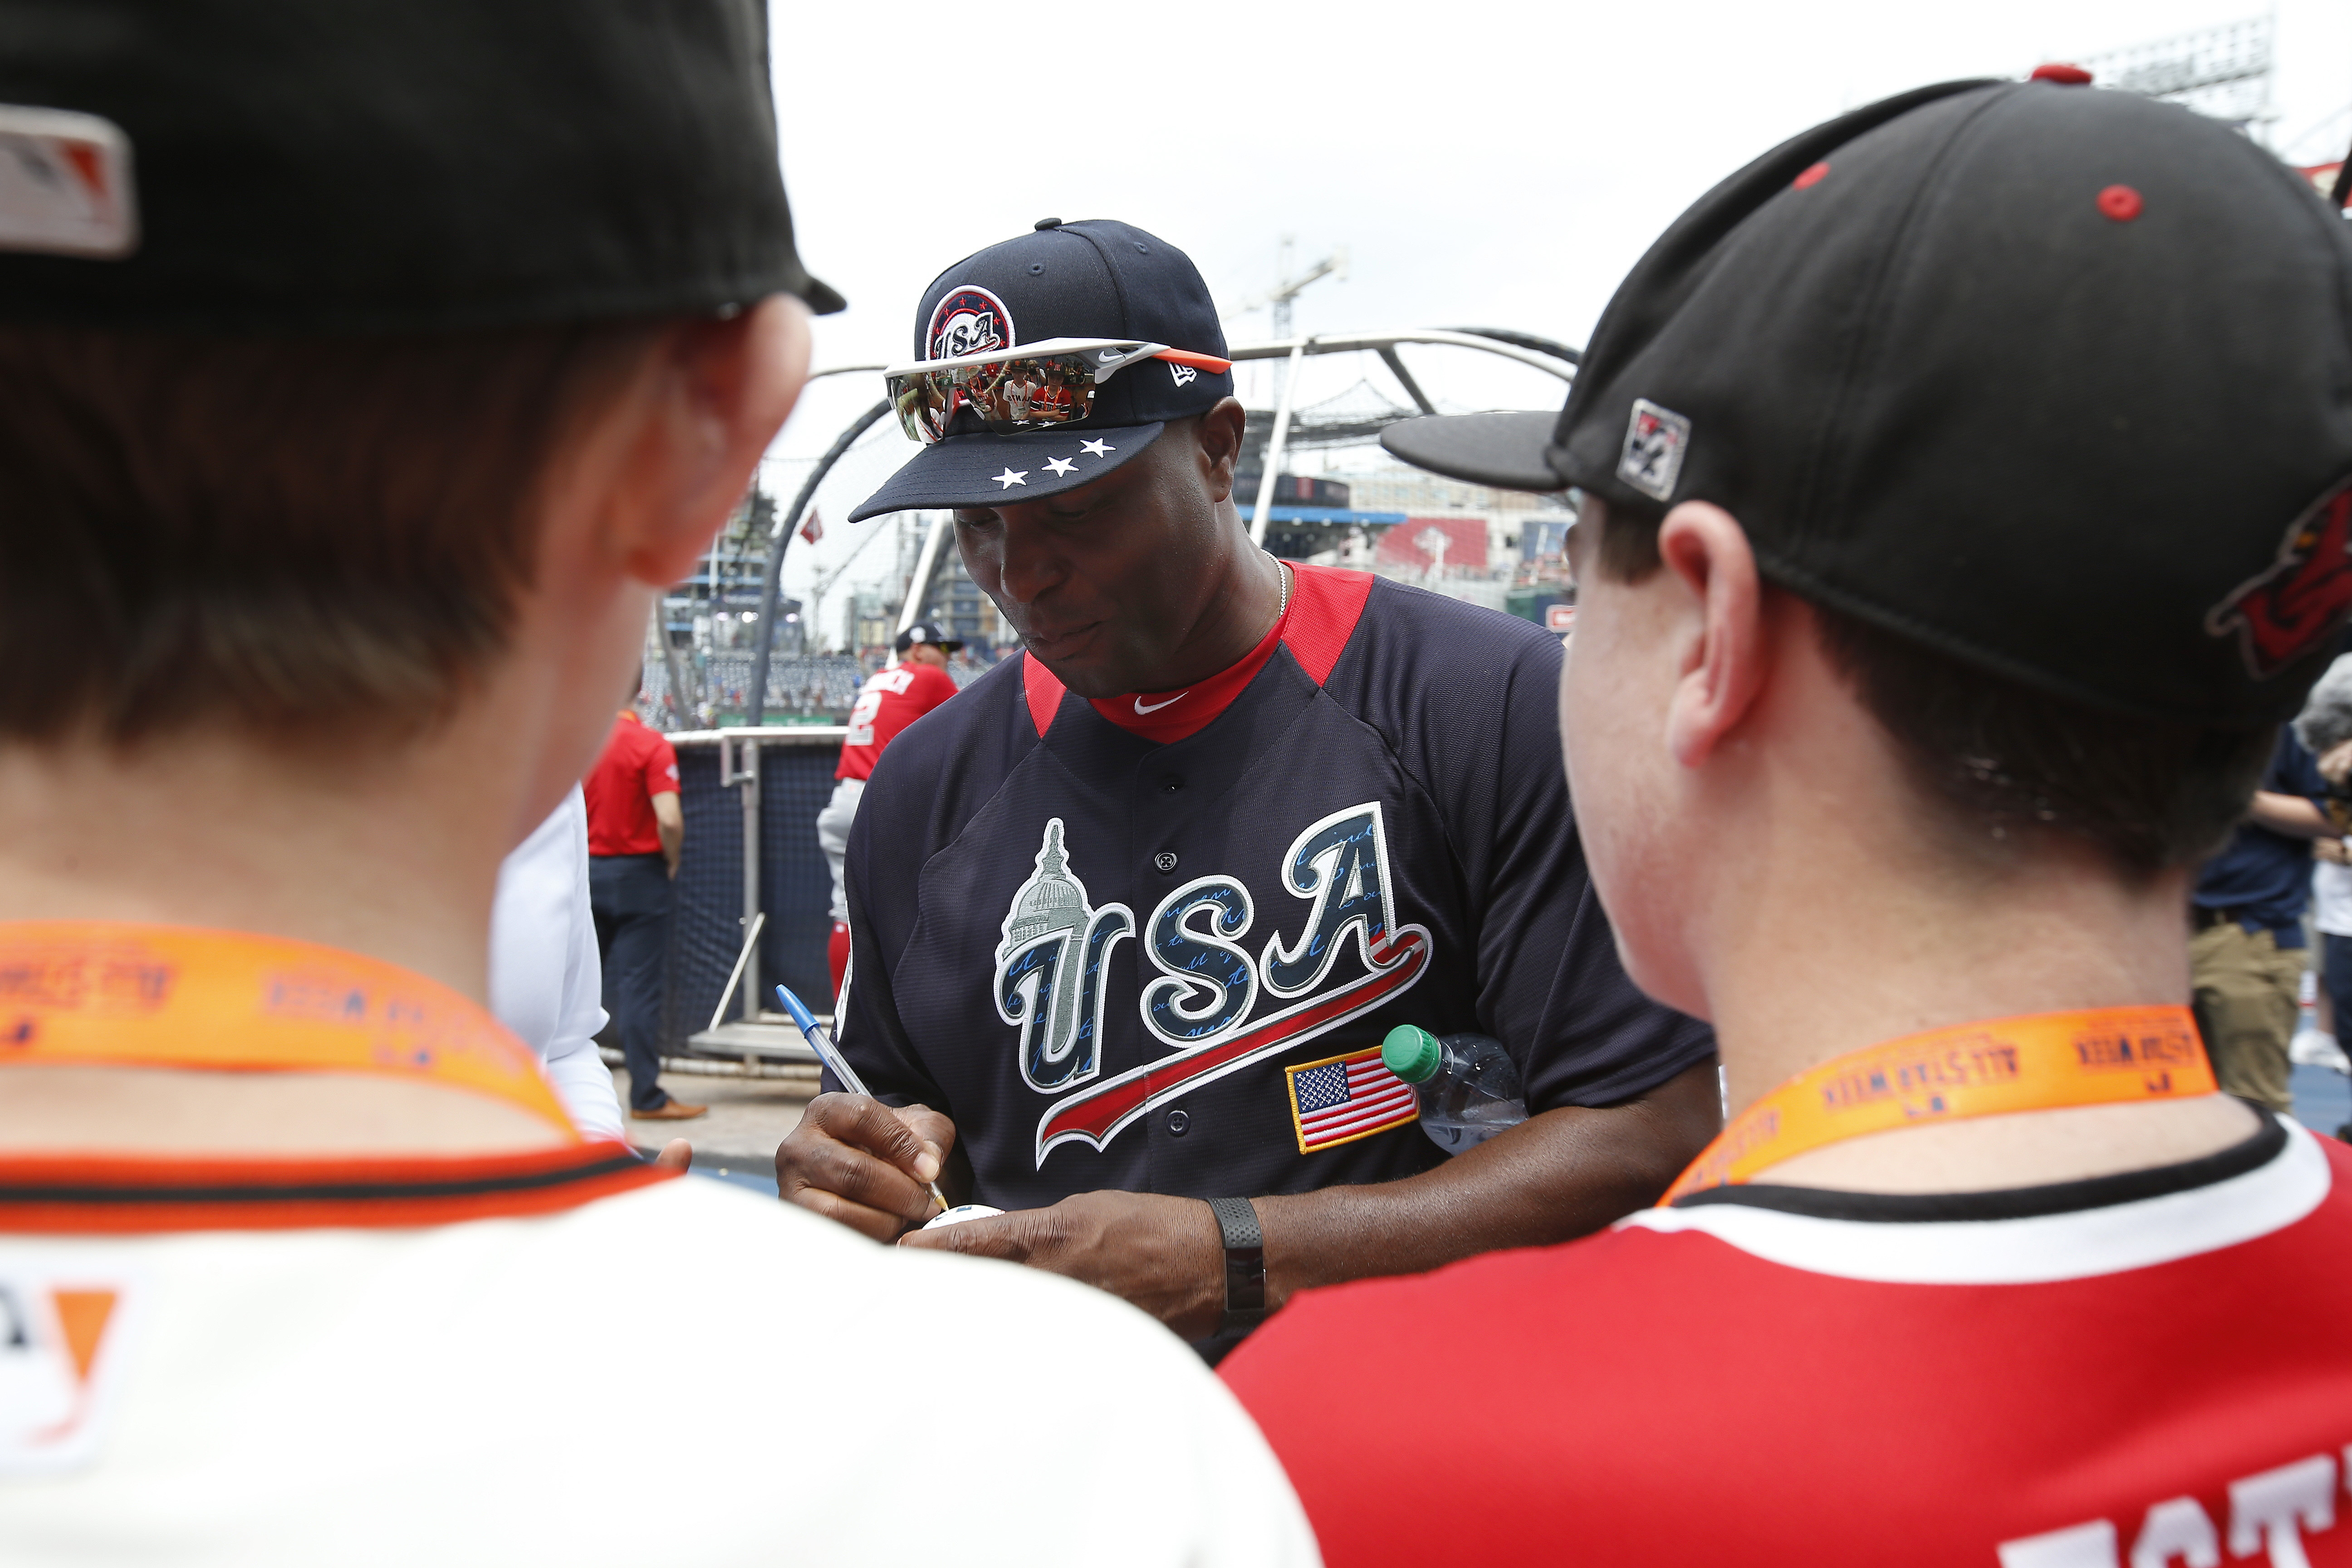 MLB All-Star Weekend invites the autograph hungry